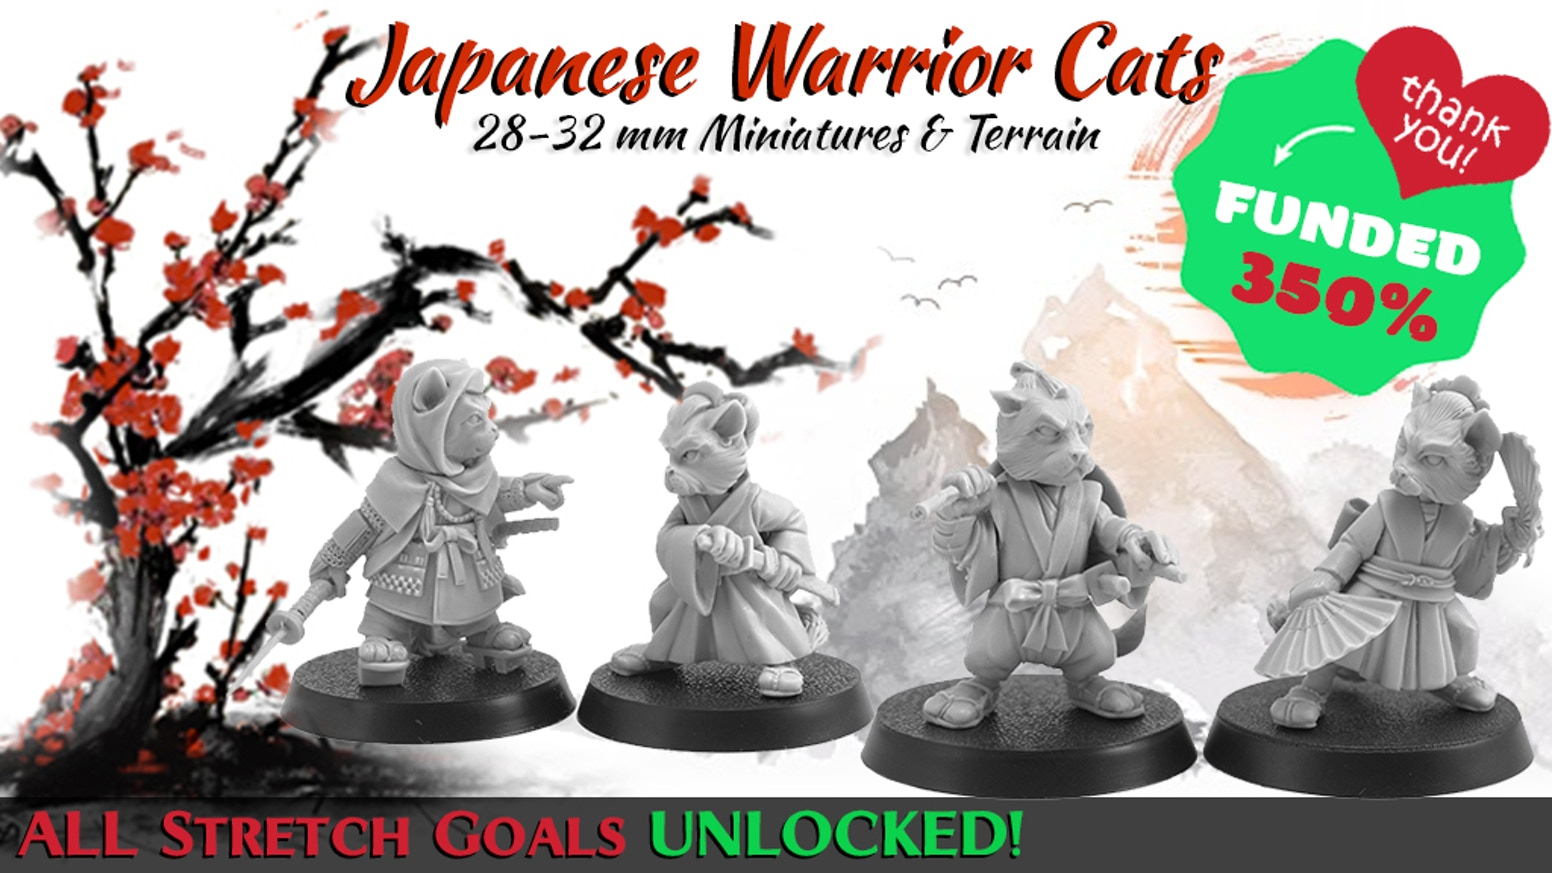 28-32 mm scale resin Miniatures and Terrain, highly detailed for games, collectors, and painters.